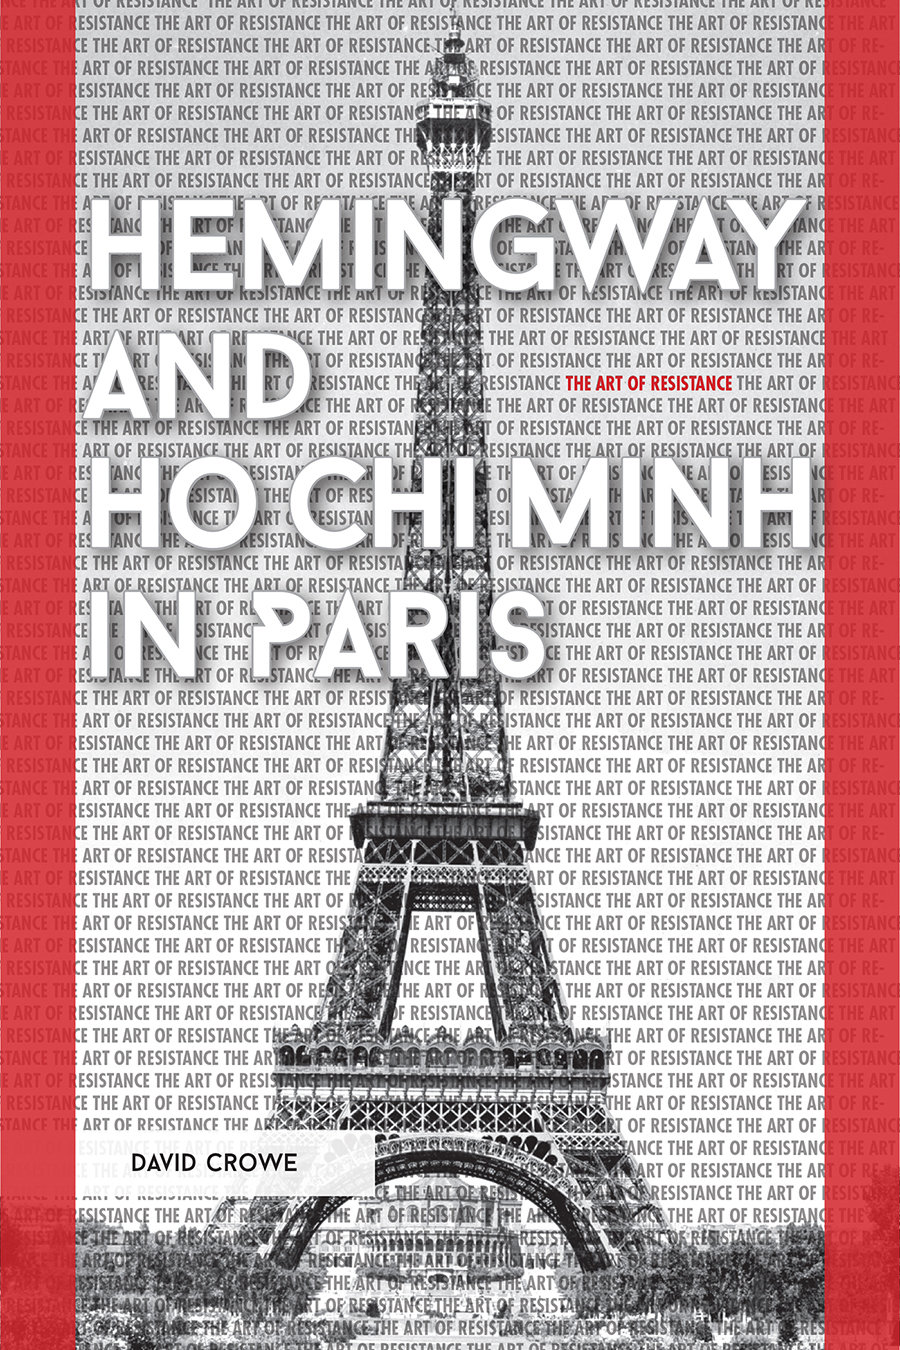 Hemingway and Ho Chi Minh in Paris: The Art of Resistance